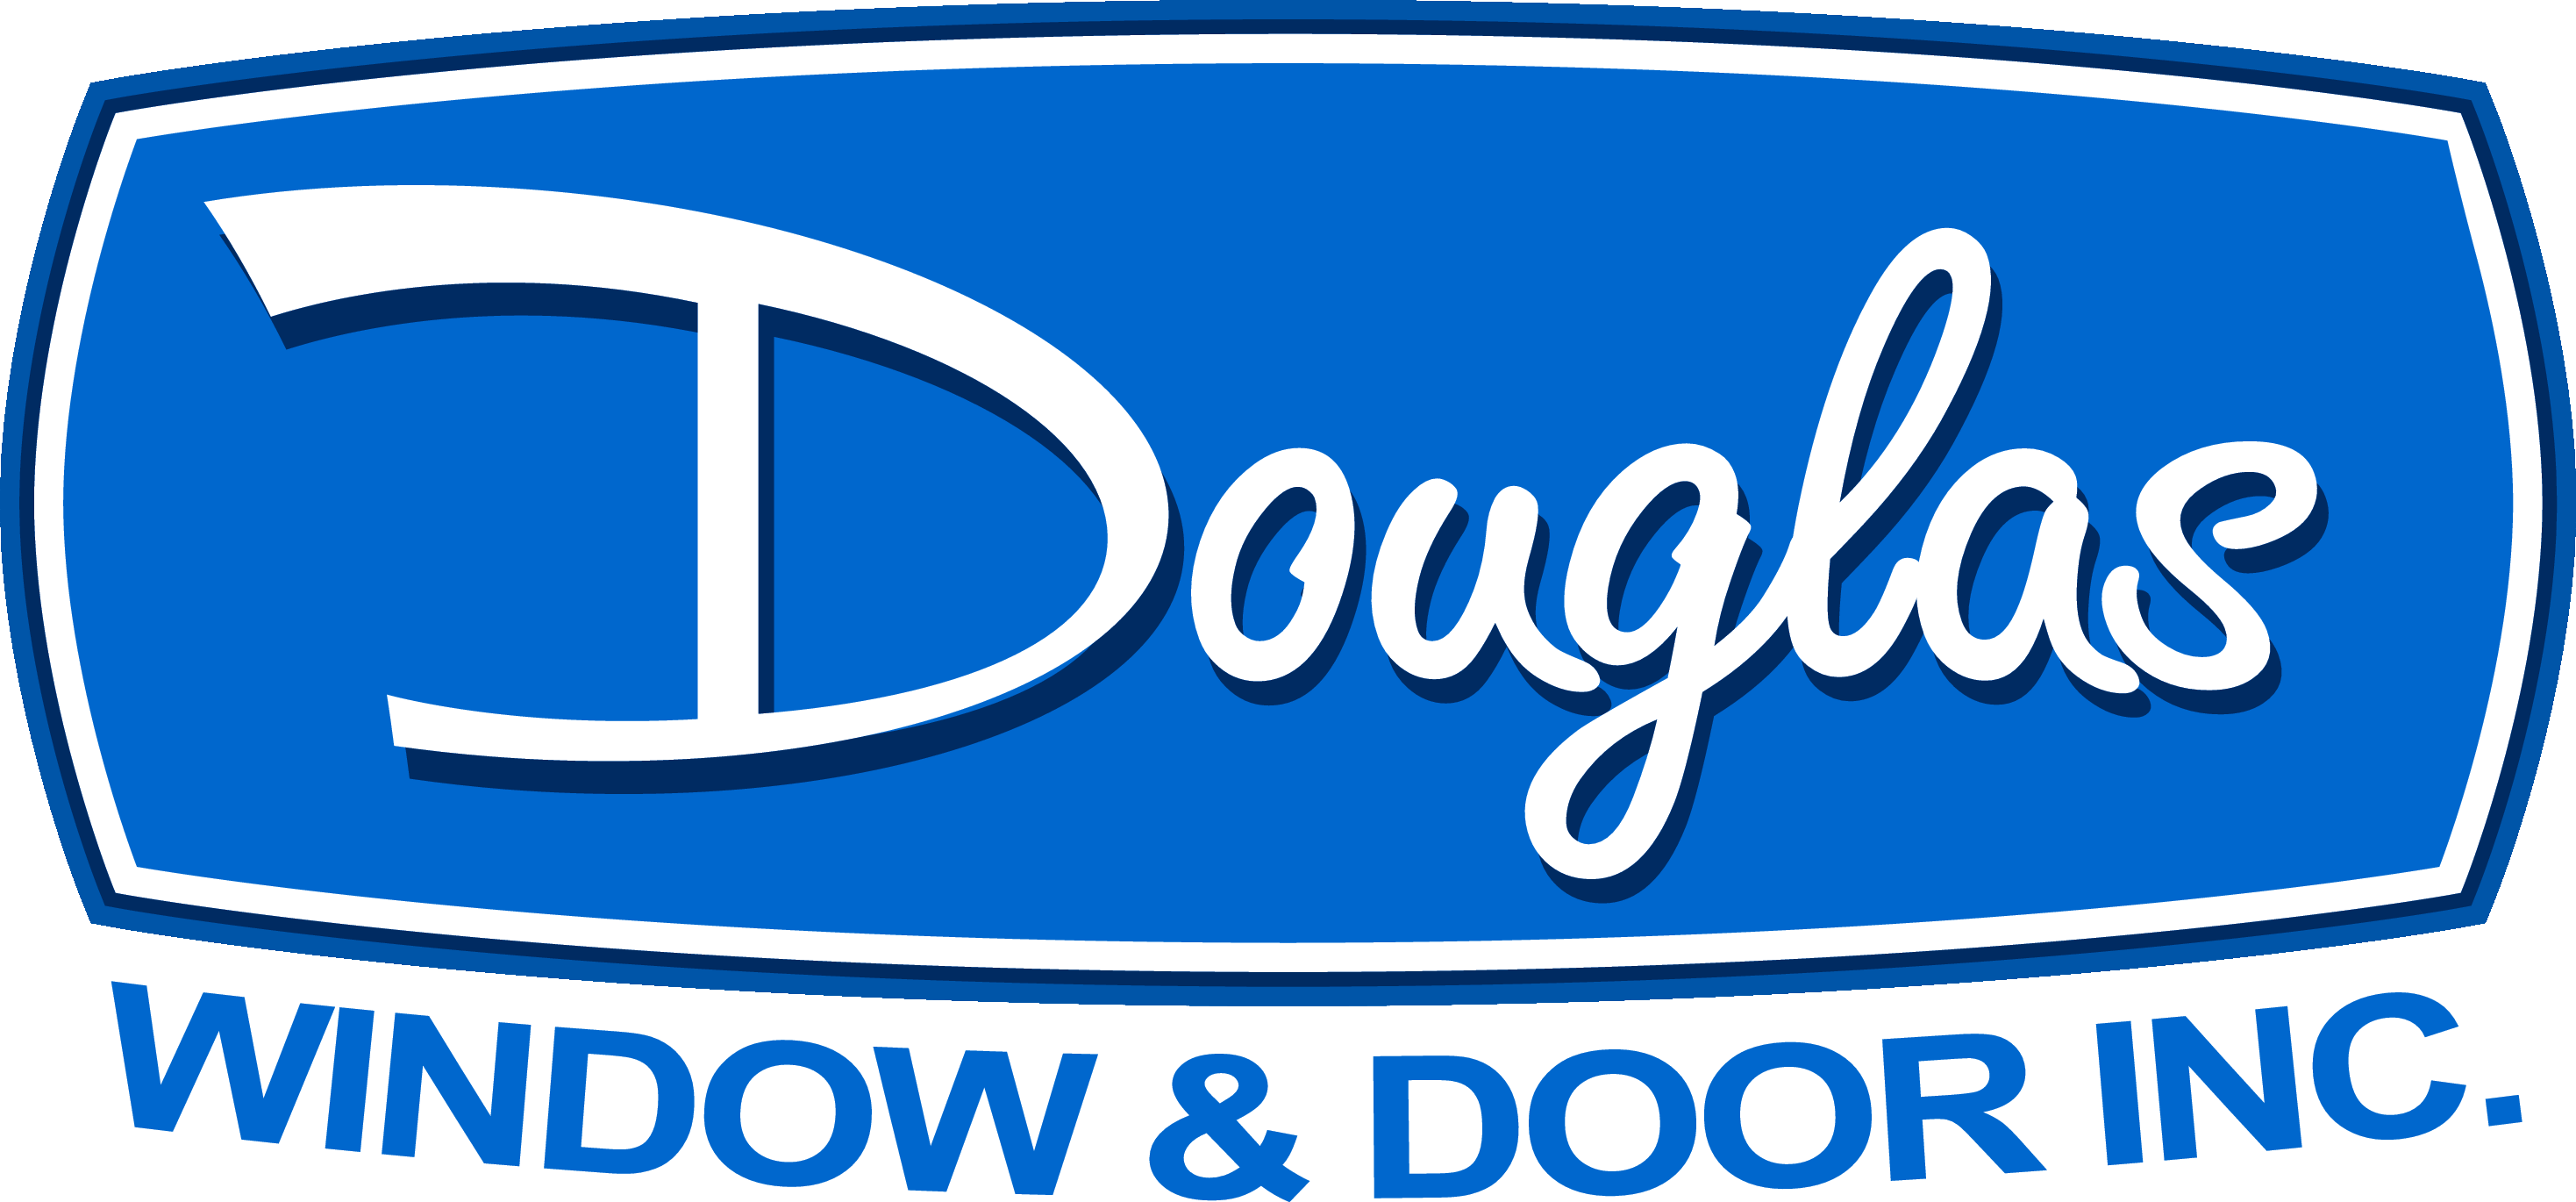 Douglas Window & Door Inc.